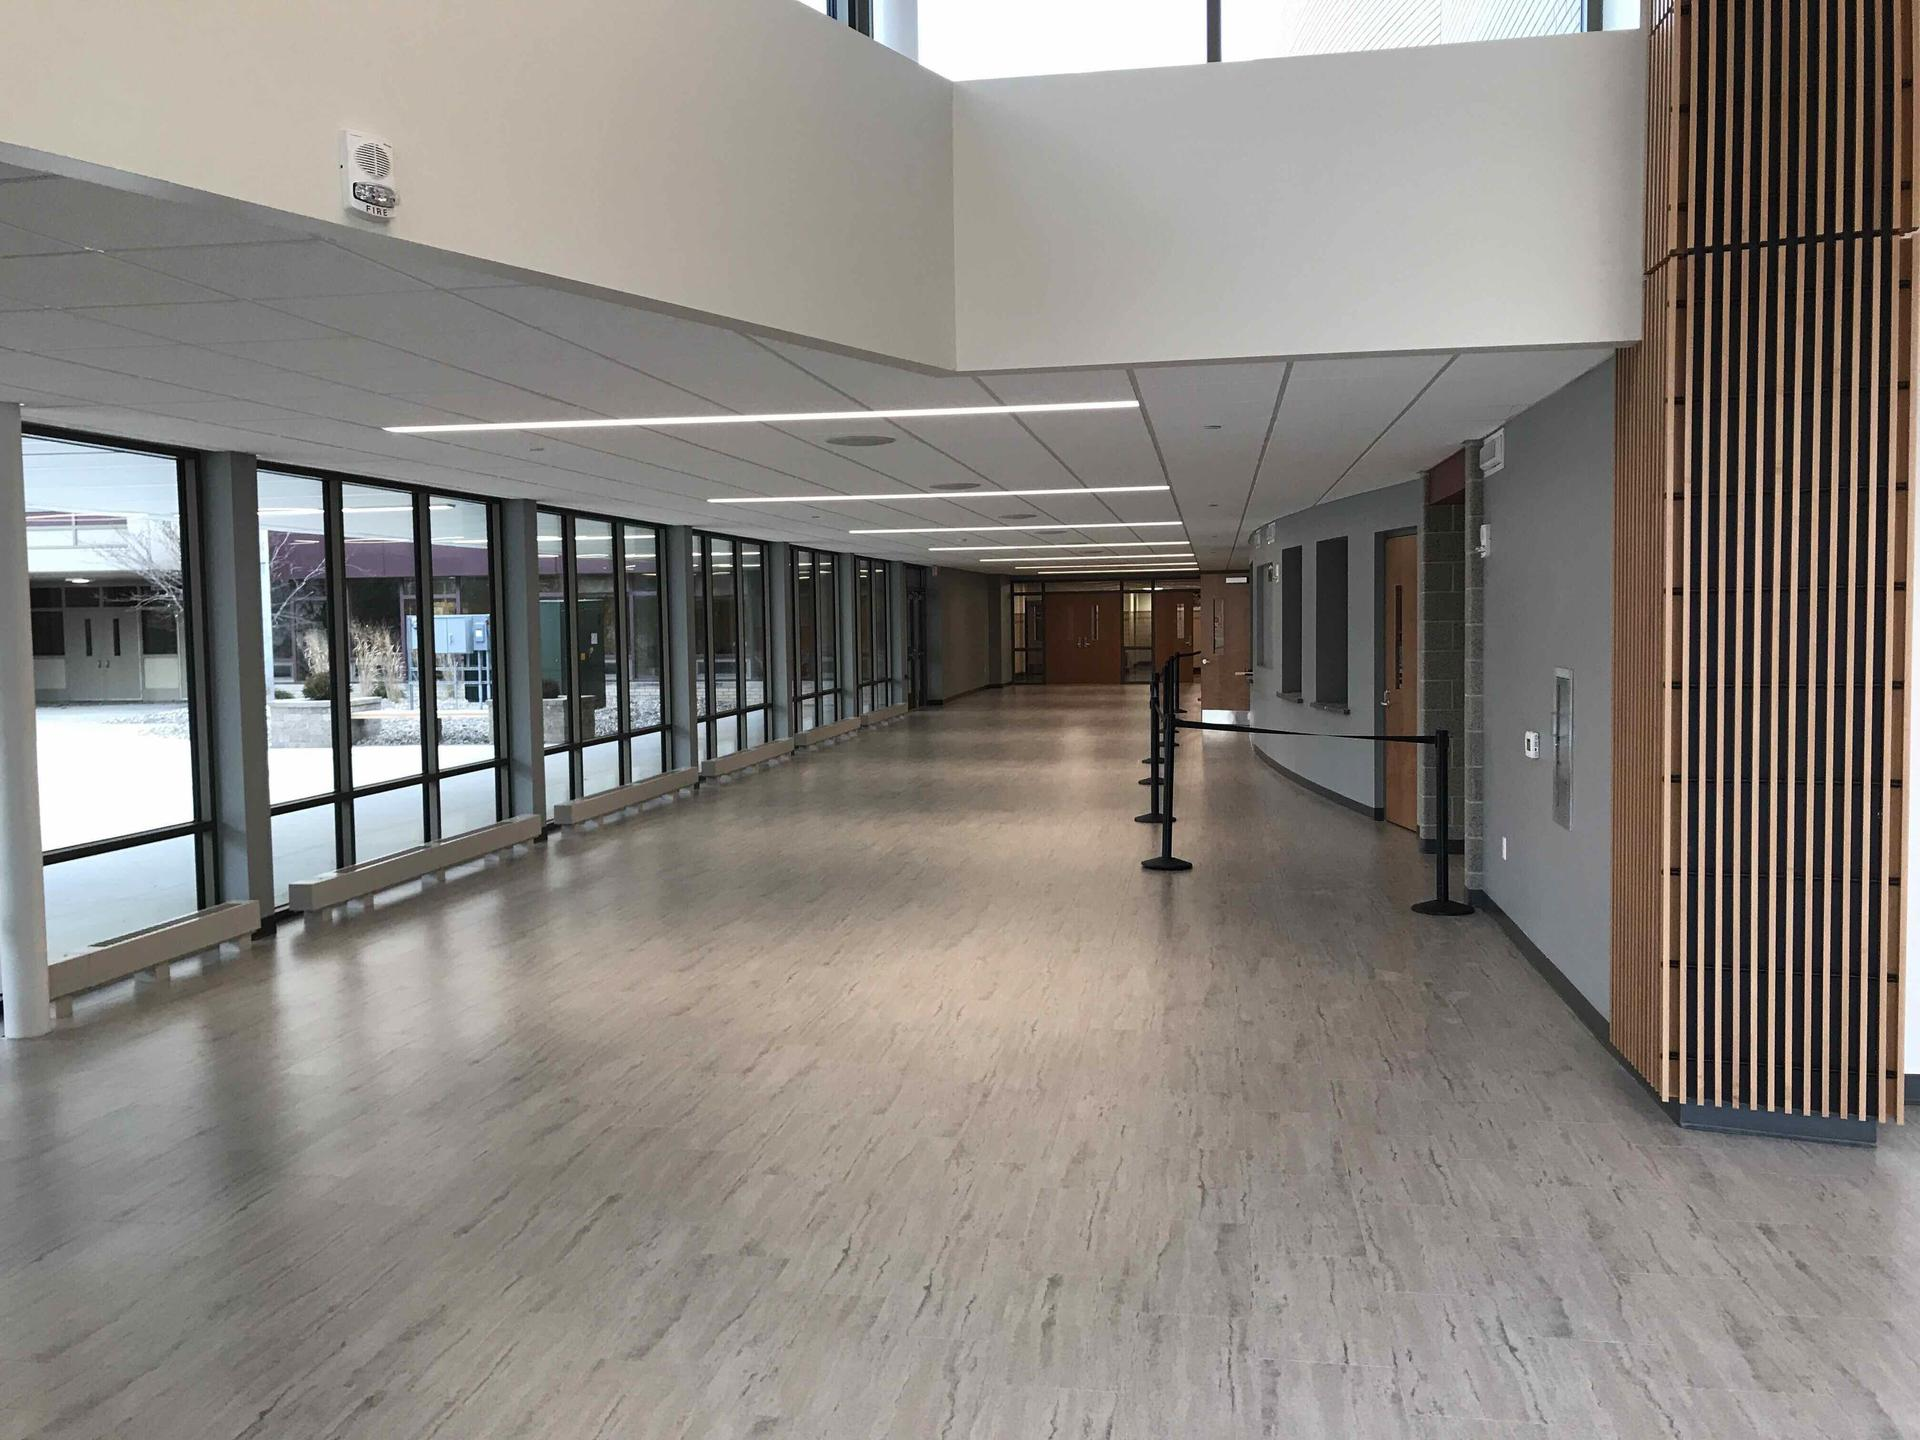 View of new lobby, looking south